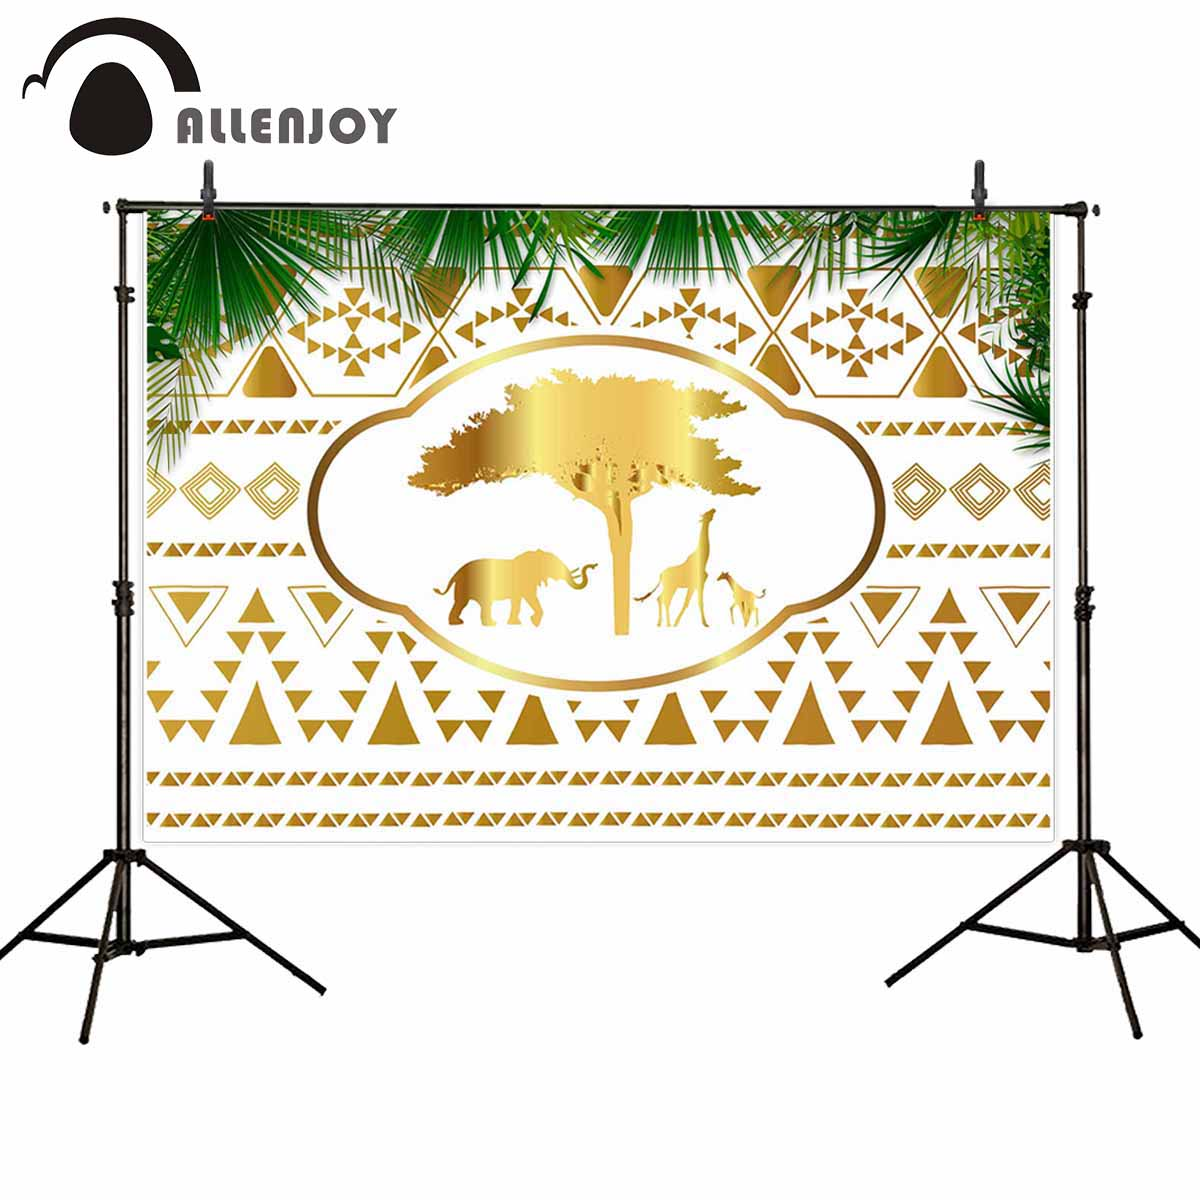 Allenjoy Golen Wild One Backdrops Forest Elephant Tree Giraffe Geometric Spring Party Background Tropical Leaves Party Photozone